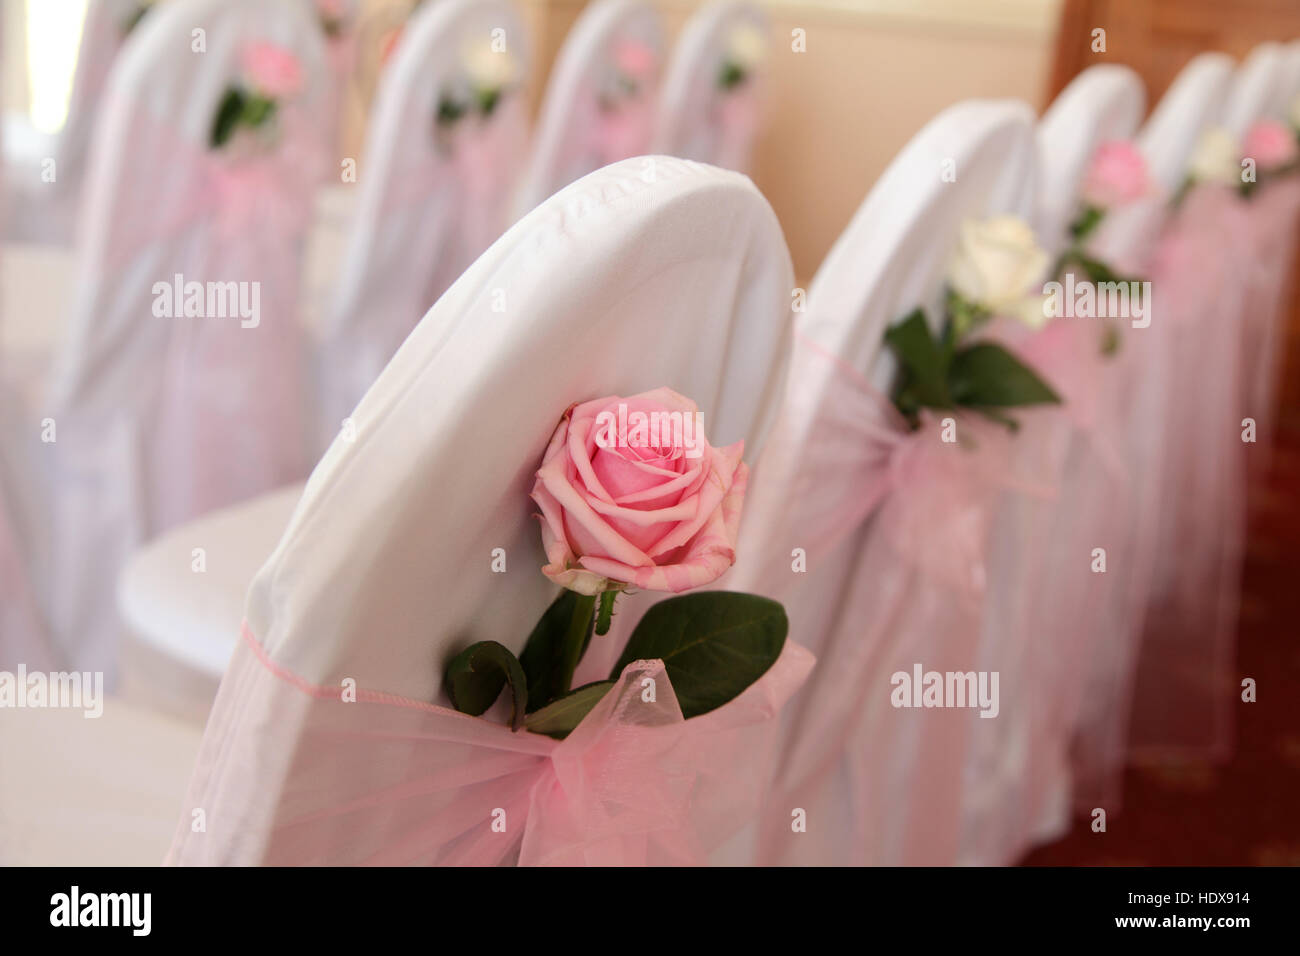 Chairs At Wedding Imágenes De Stock & Chairs At Wedding Fotos De ...